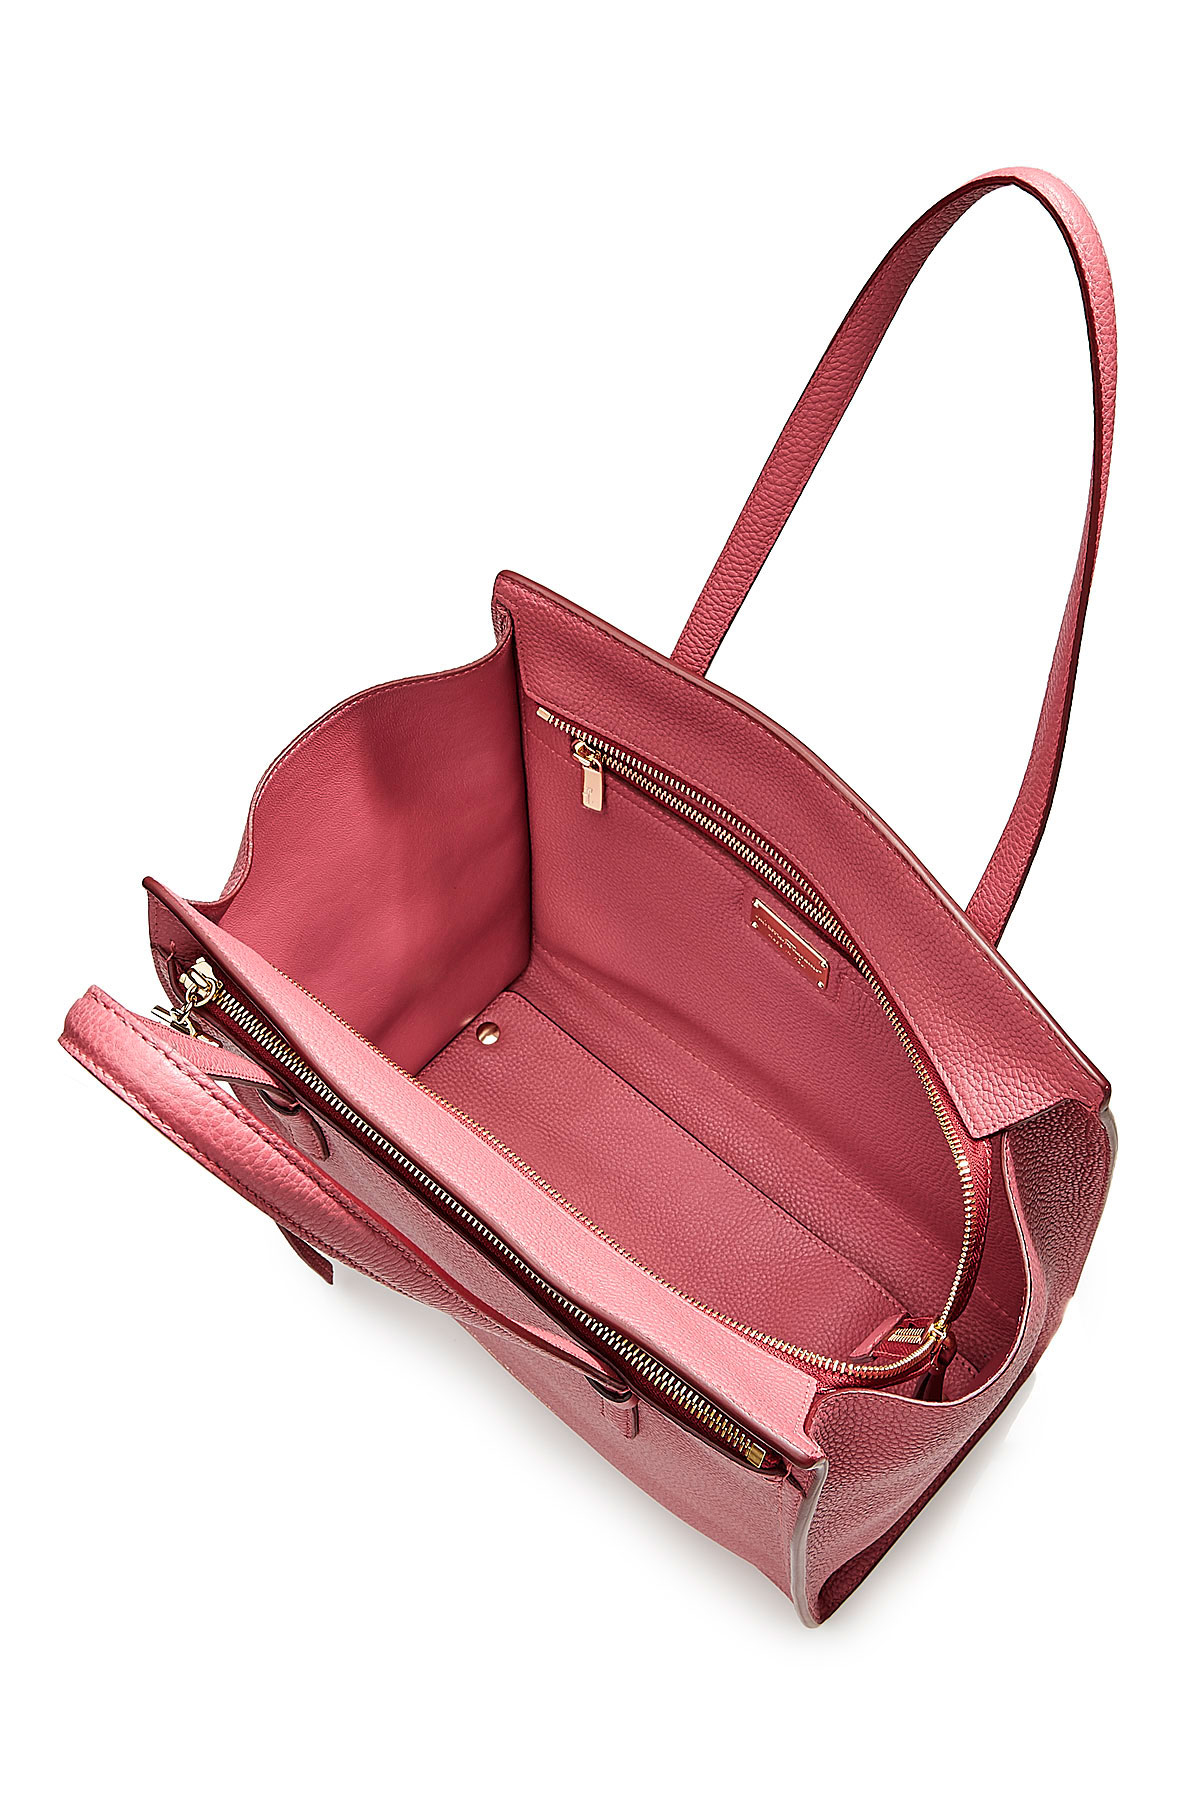 b7149ac11c Lyst - Ferragamo Amy Small Leather Tote - Rose in Pink